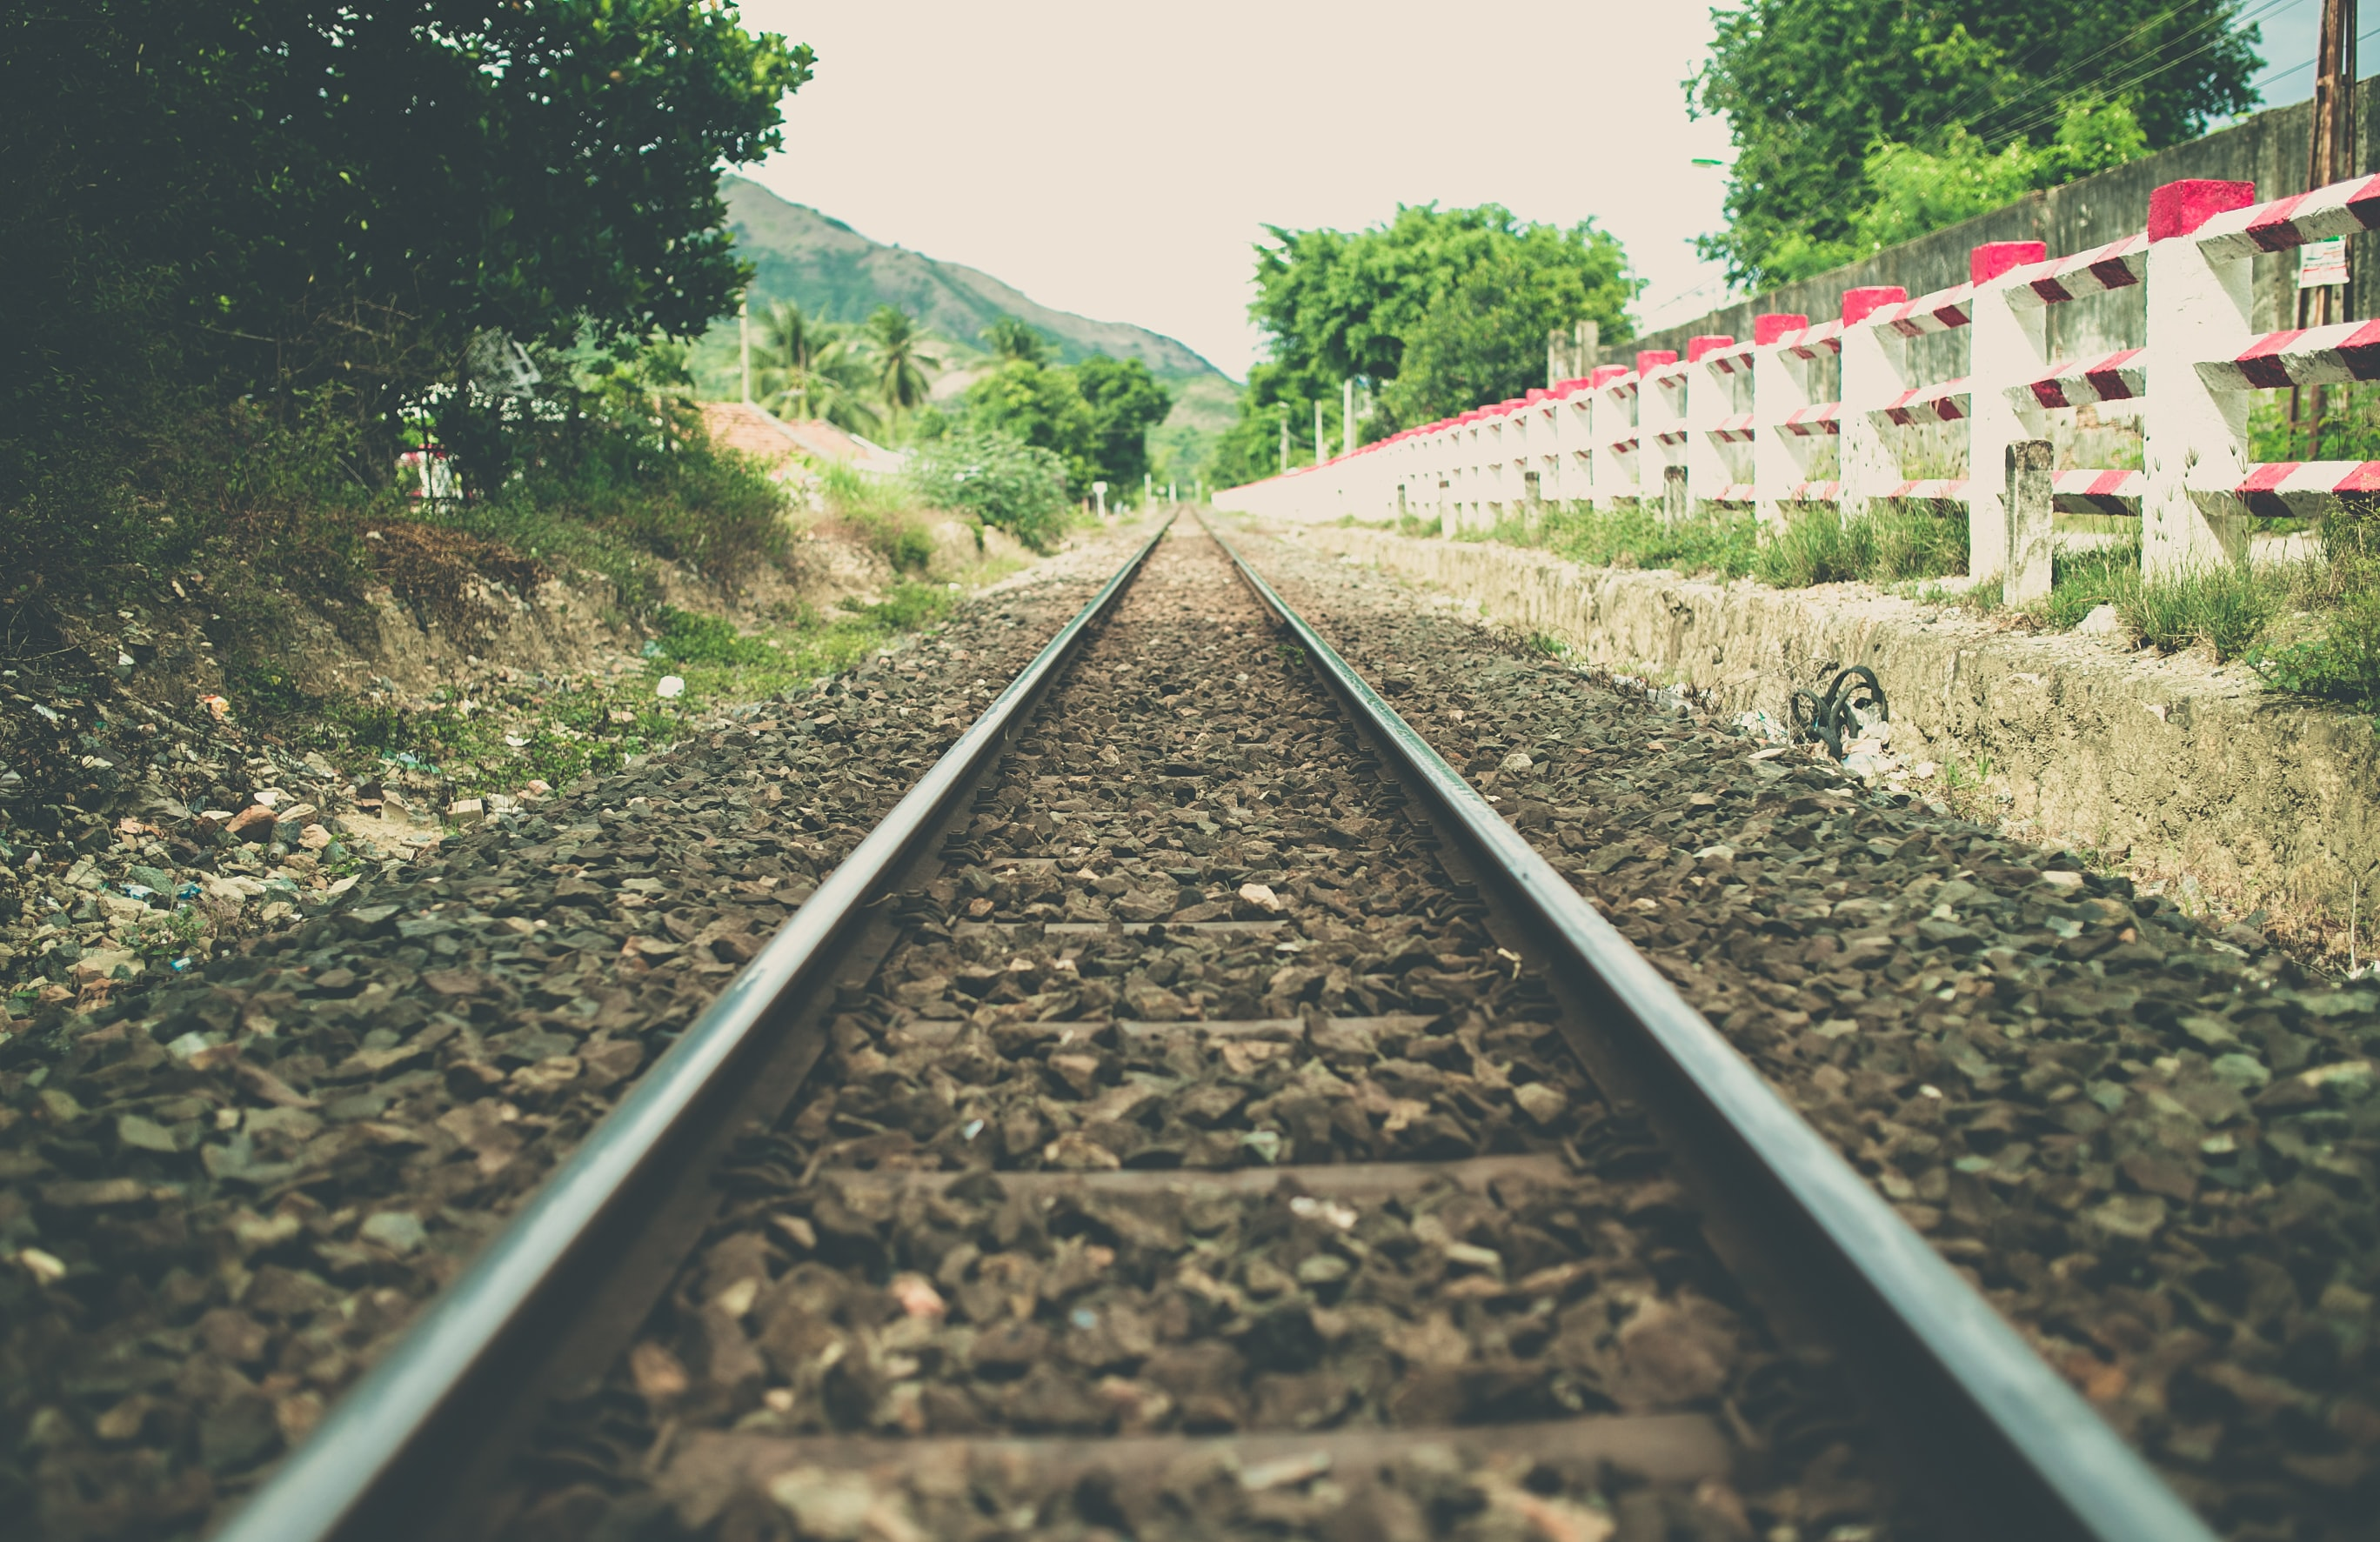 A perspective shot of a railroad track running down a path beside a red and white striped fence, several trees, and a mountain.